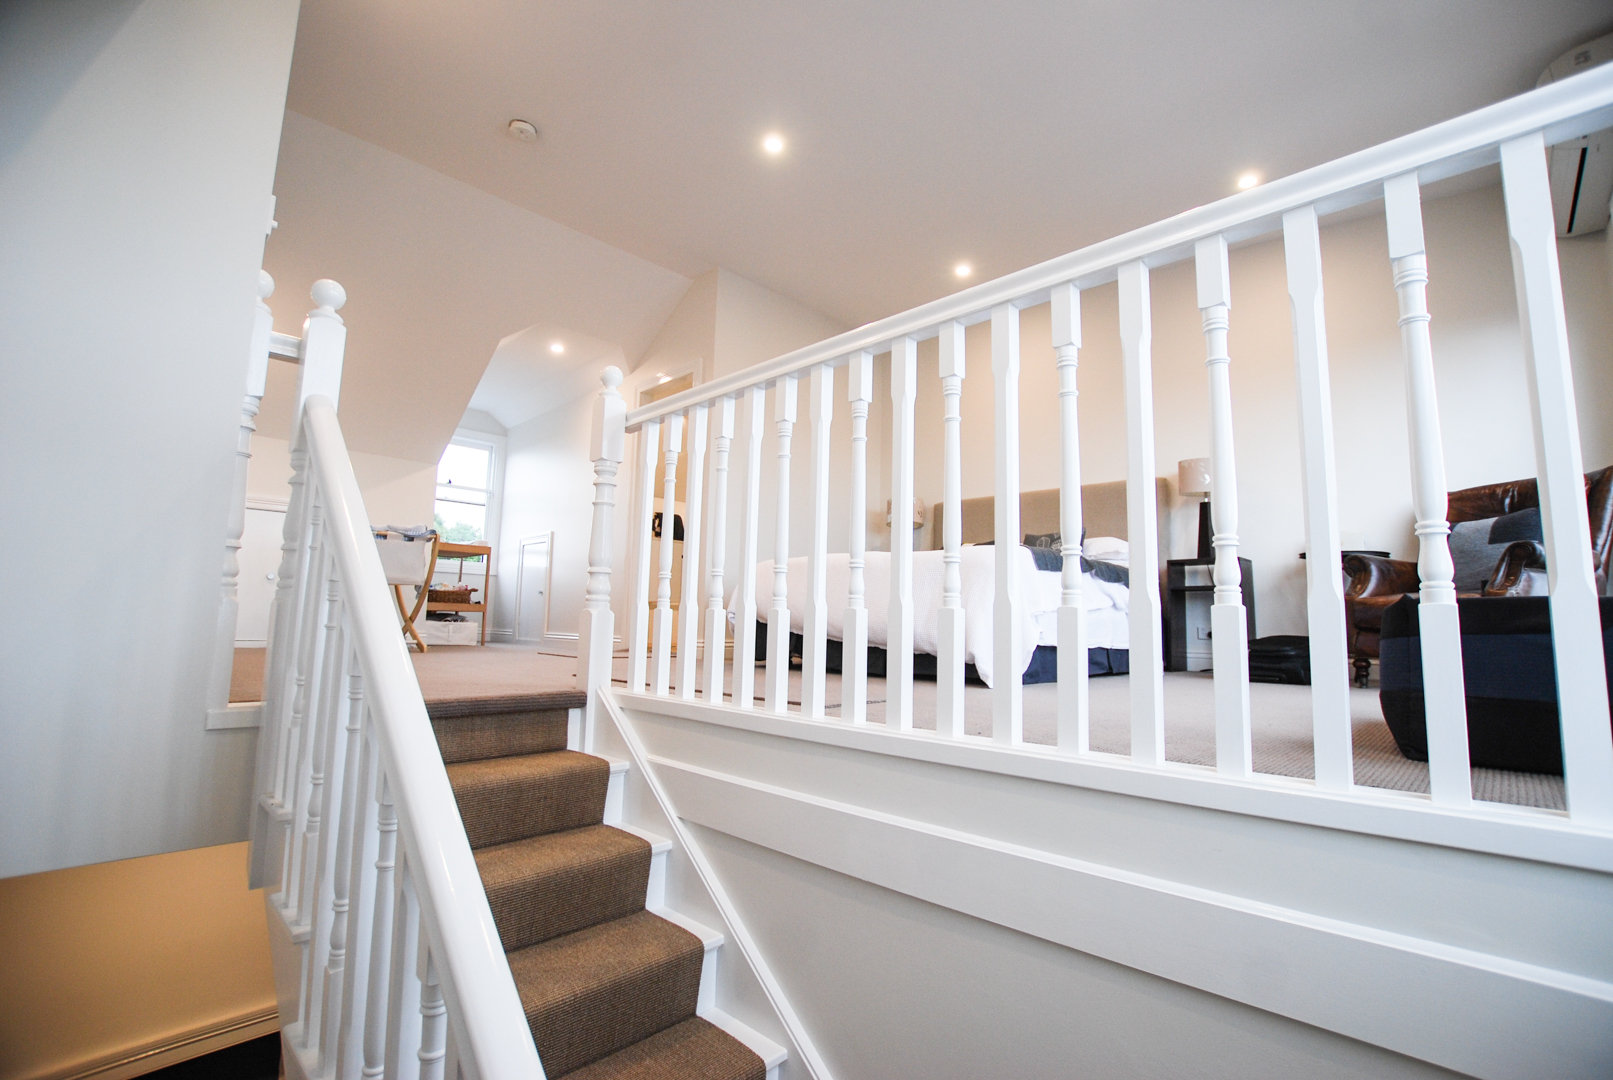 Attic staircase with white banister and railing - view up to habitable attic room